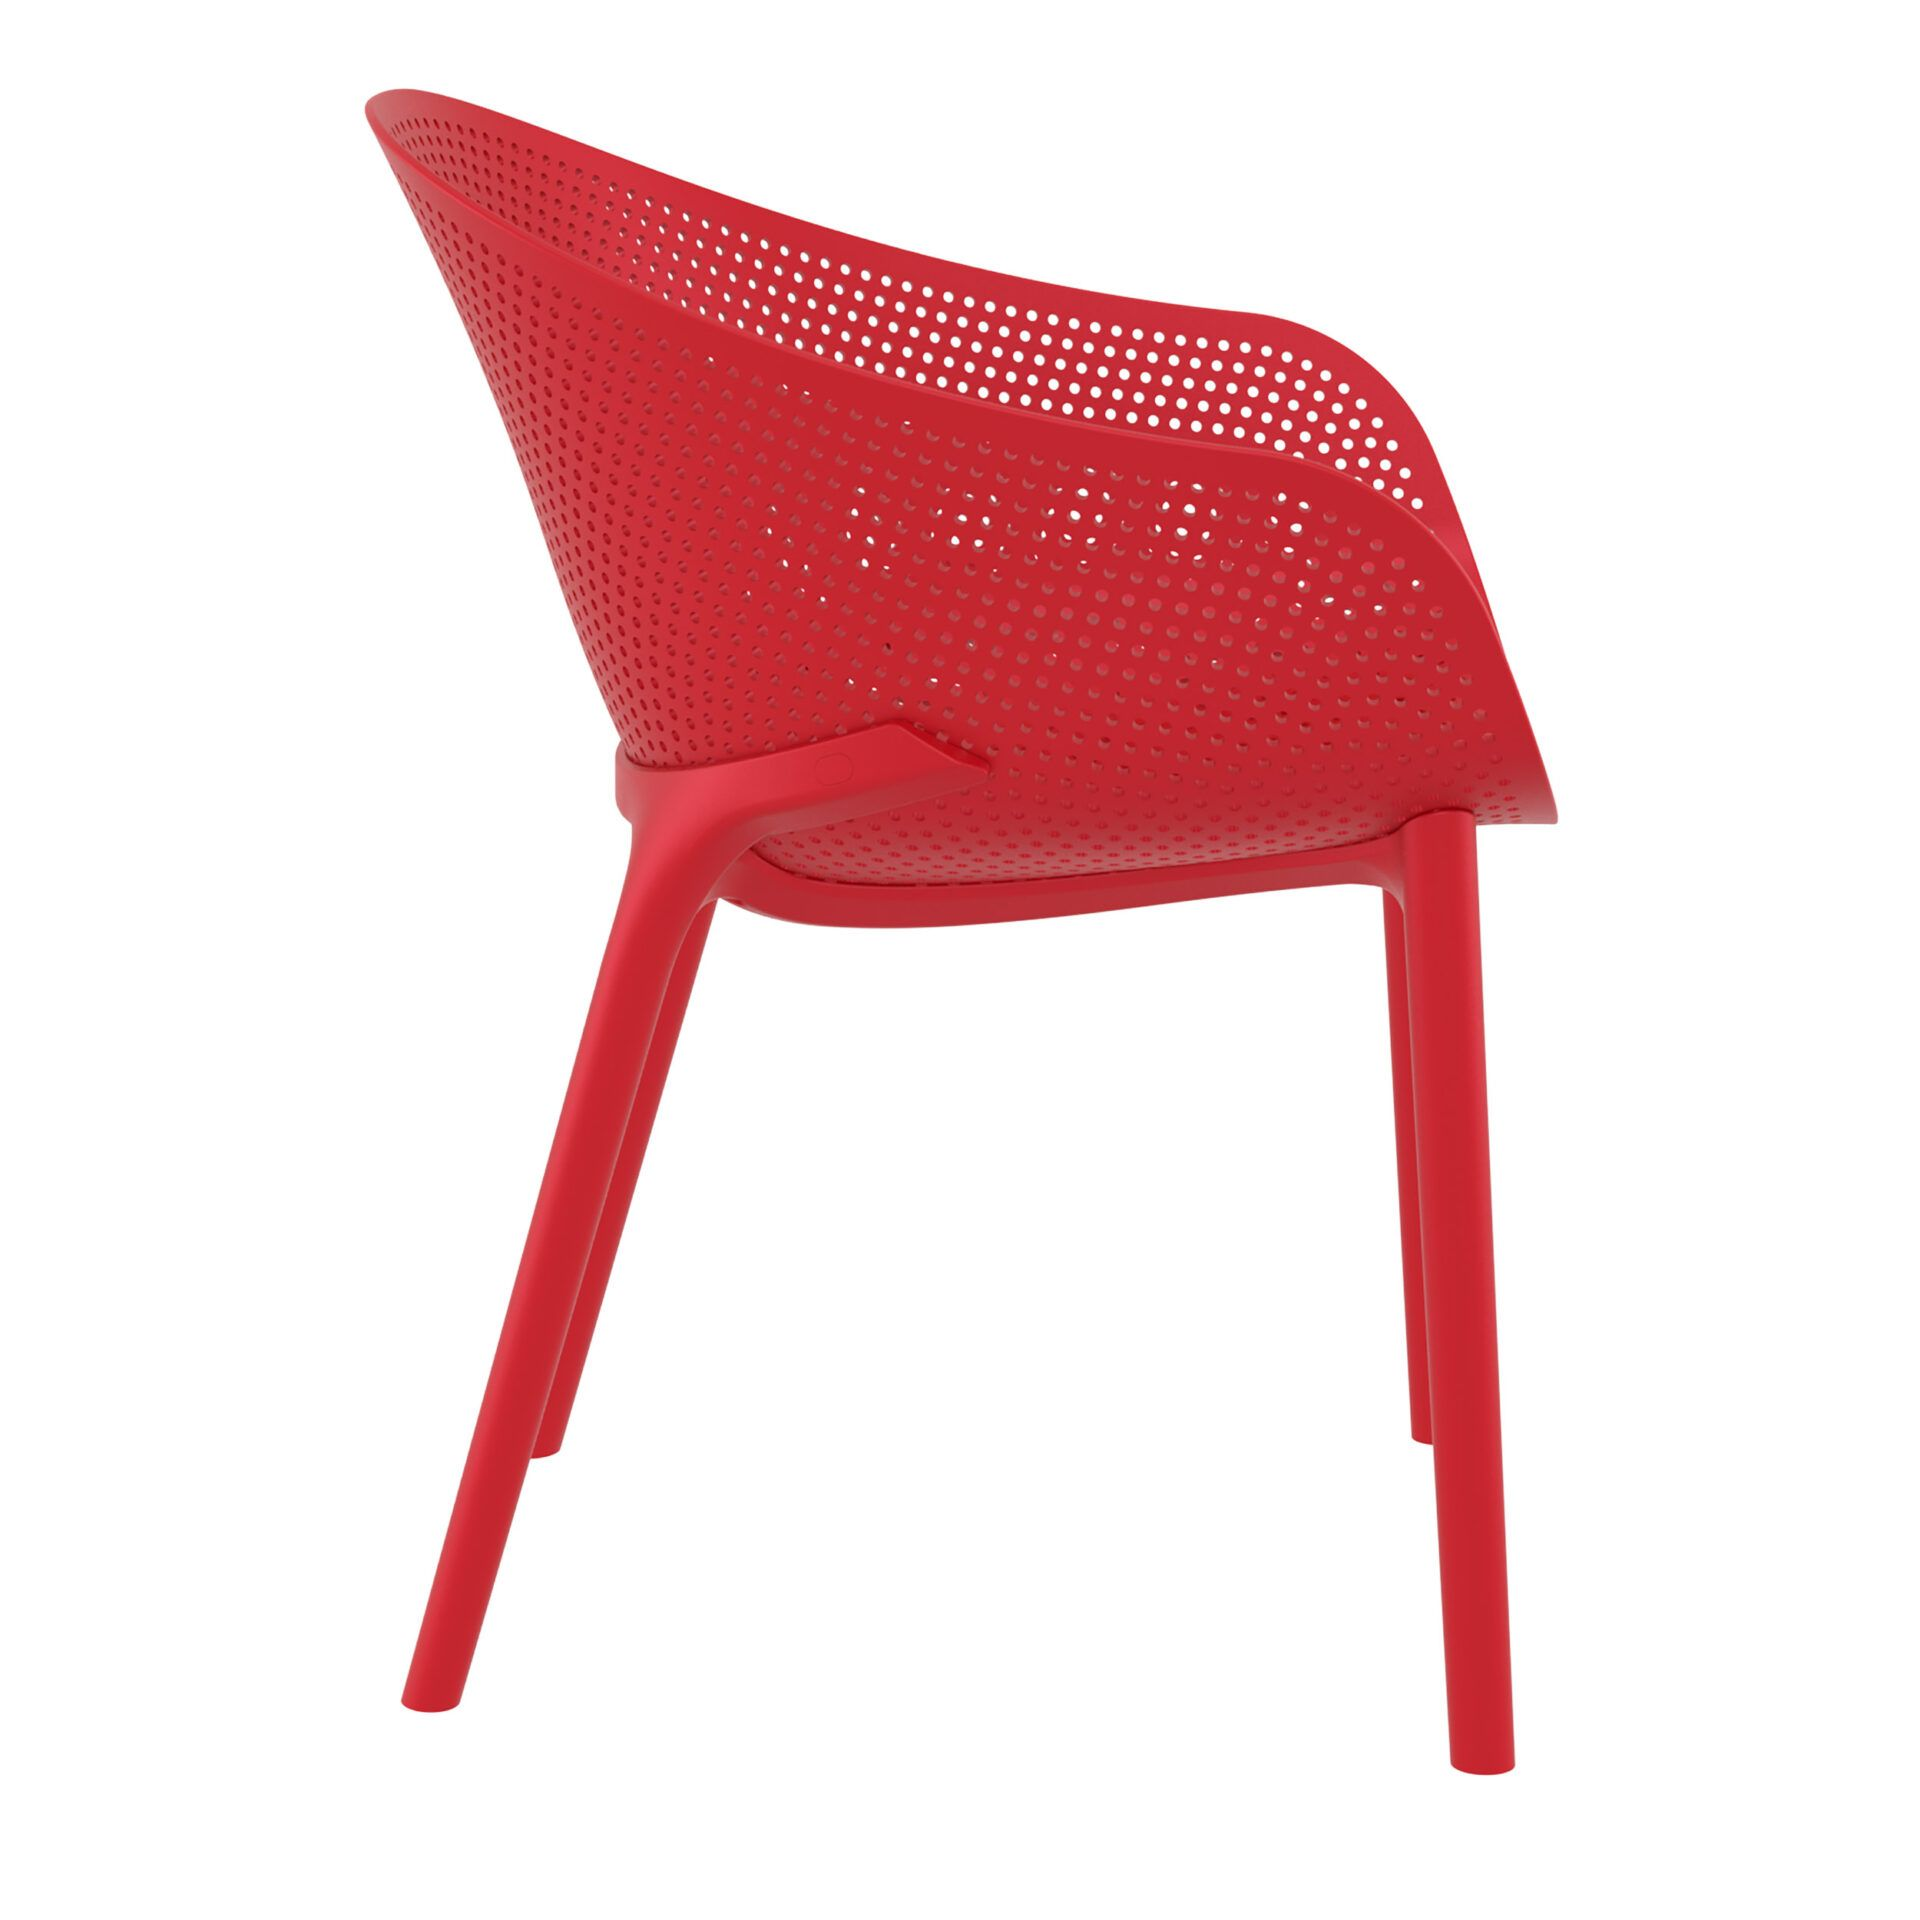 outdoor seating polypropylene sky chair red side